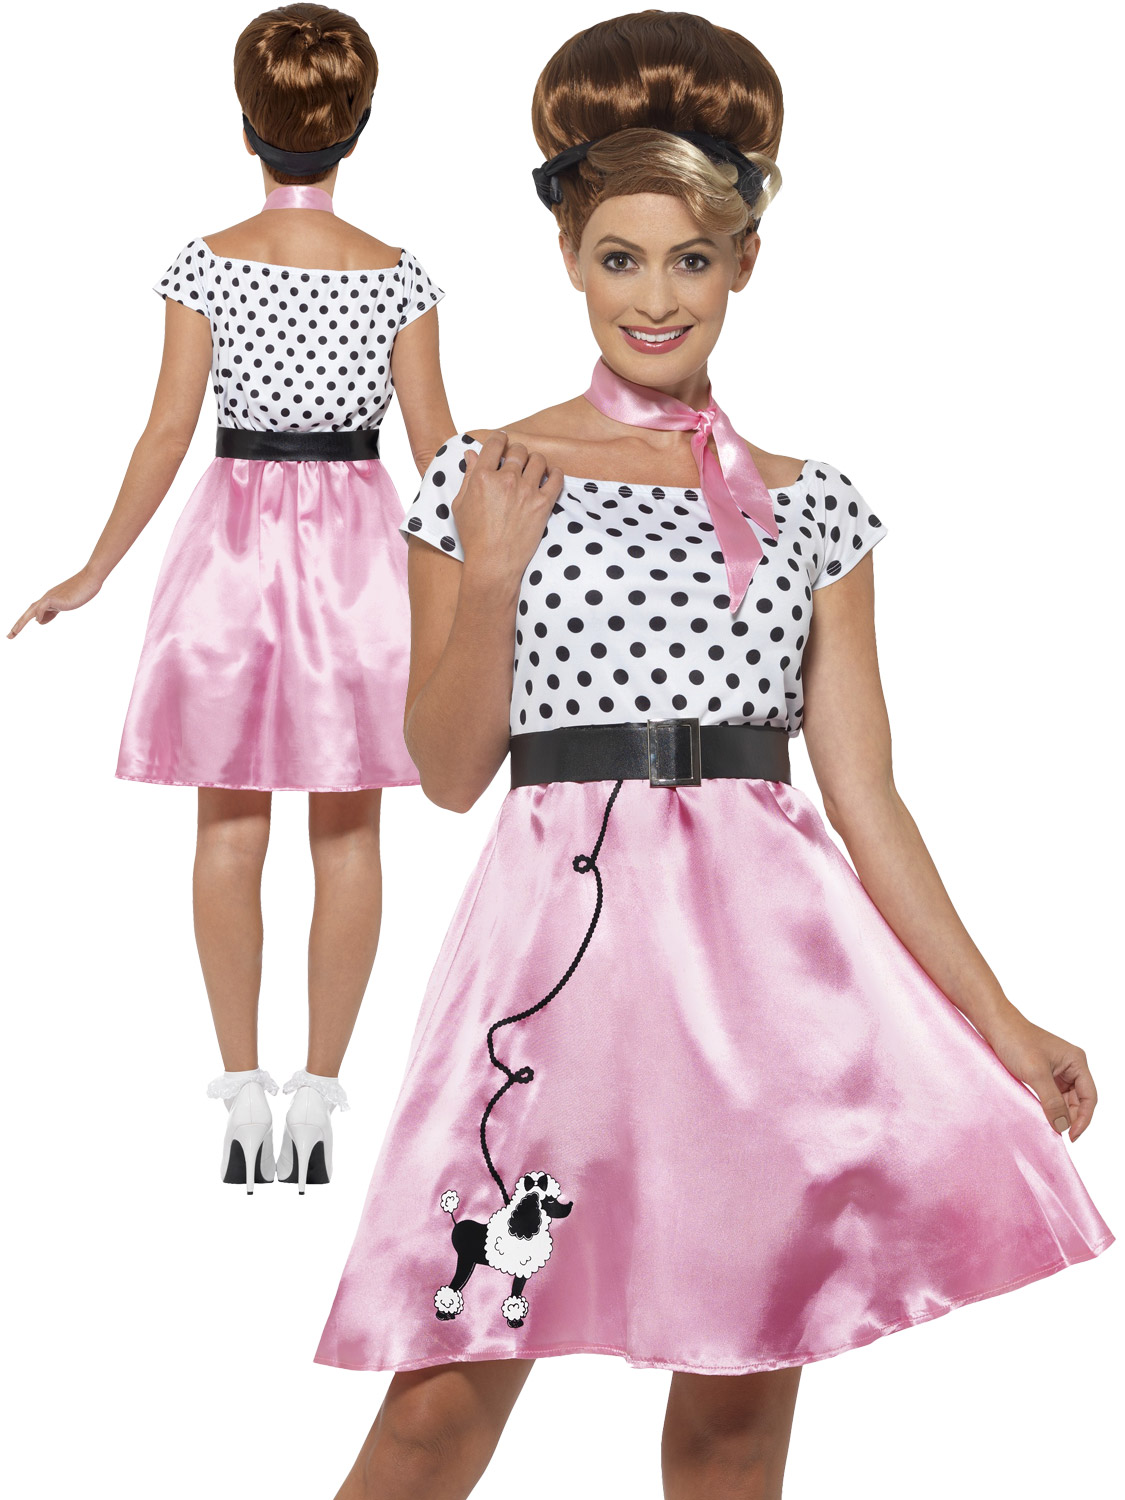 b82183e827e5 Ladies 50's Rock 'N' Roll Costume Adults 1950s Fancy Dress Poodle Grease  Womens. Image 2